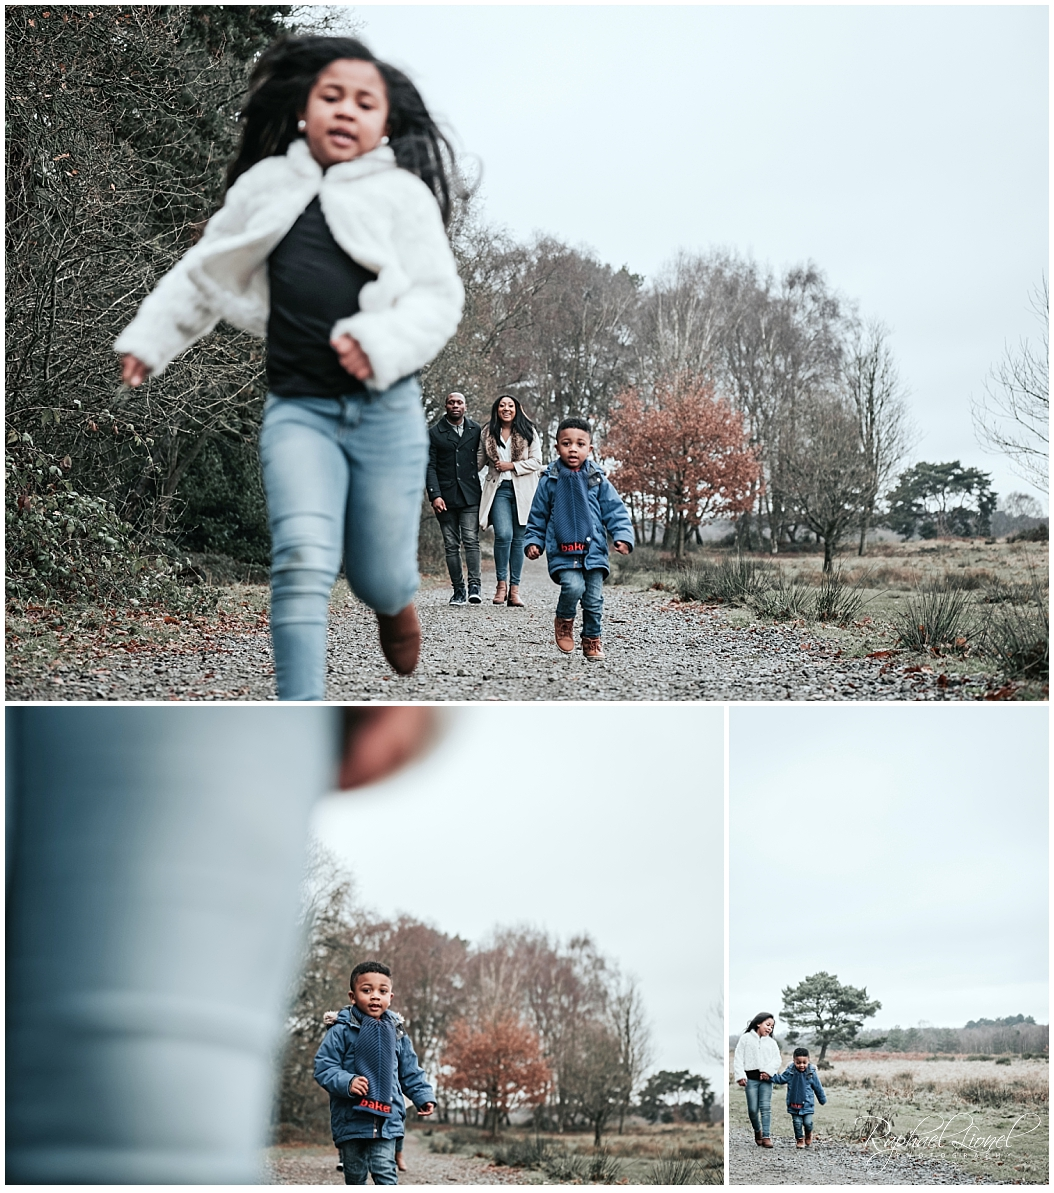 ThisisFamilyHalls10 - Sutton Park Family Lifestyle Session | The Halls | This is Family